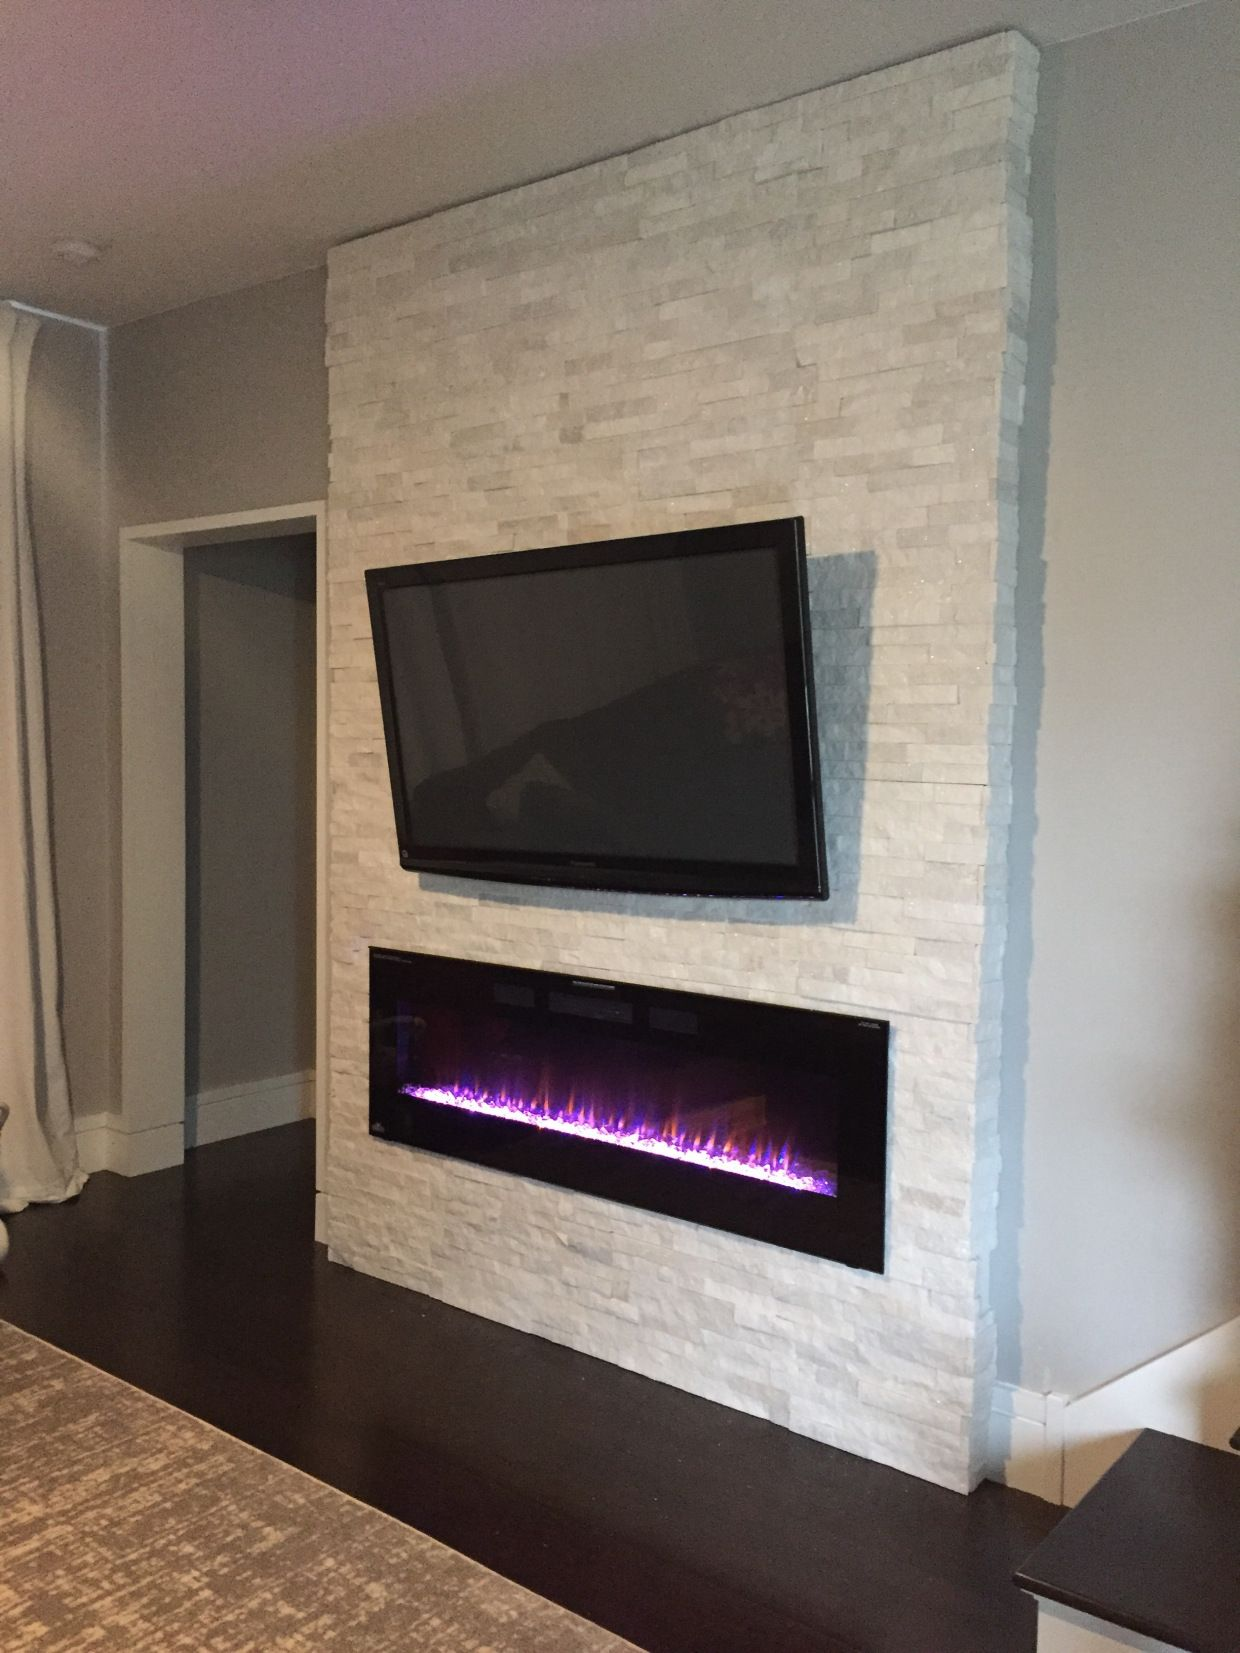 Fireplace Surround Finale Build A Fireplace Wall Mounted Fireplace Electric Fireplace Wall